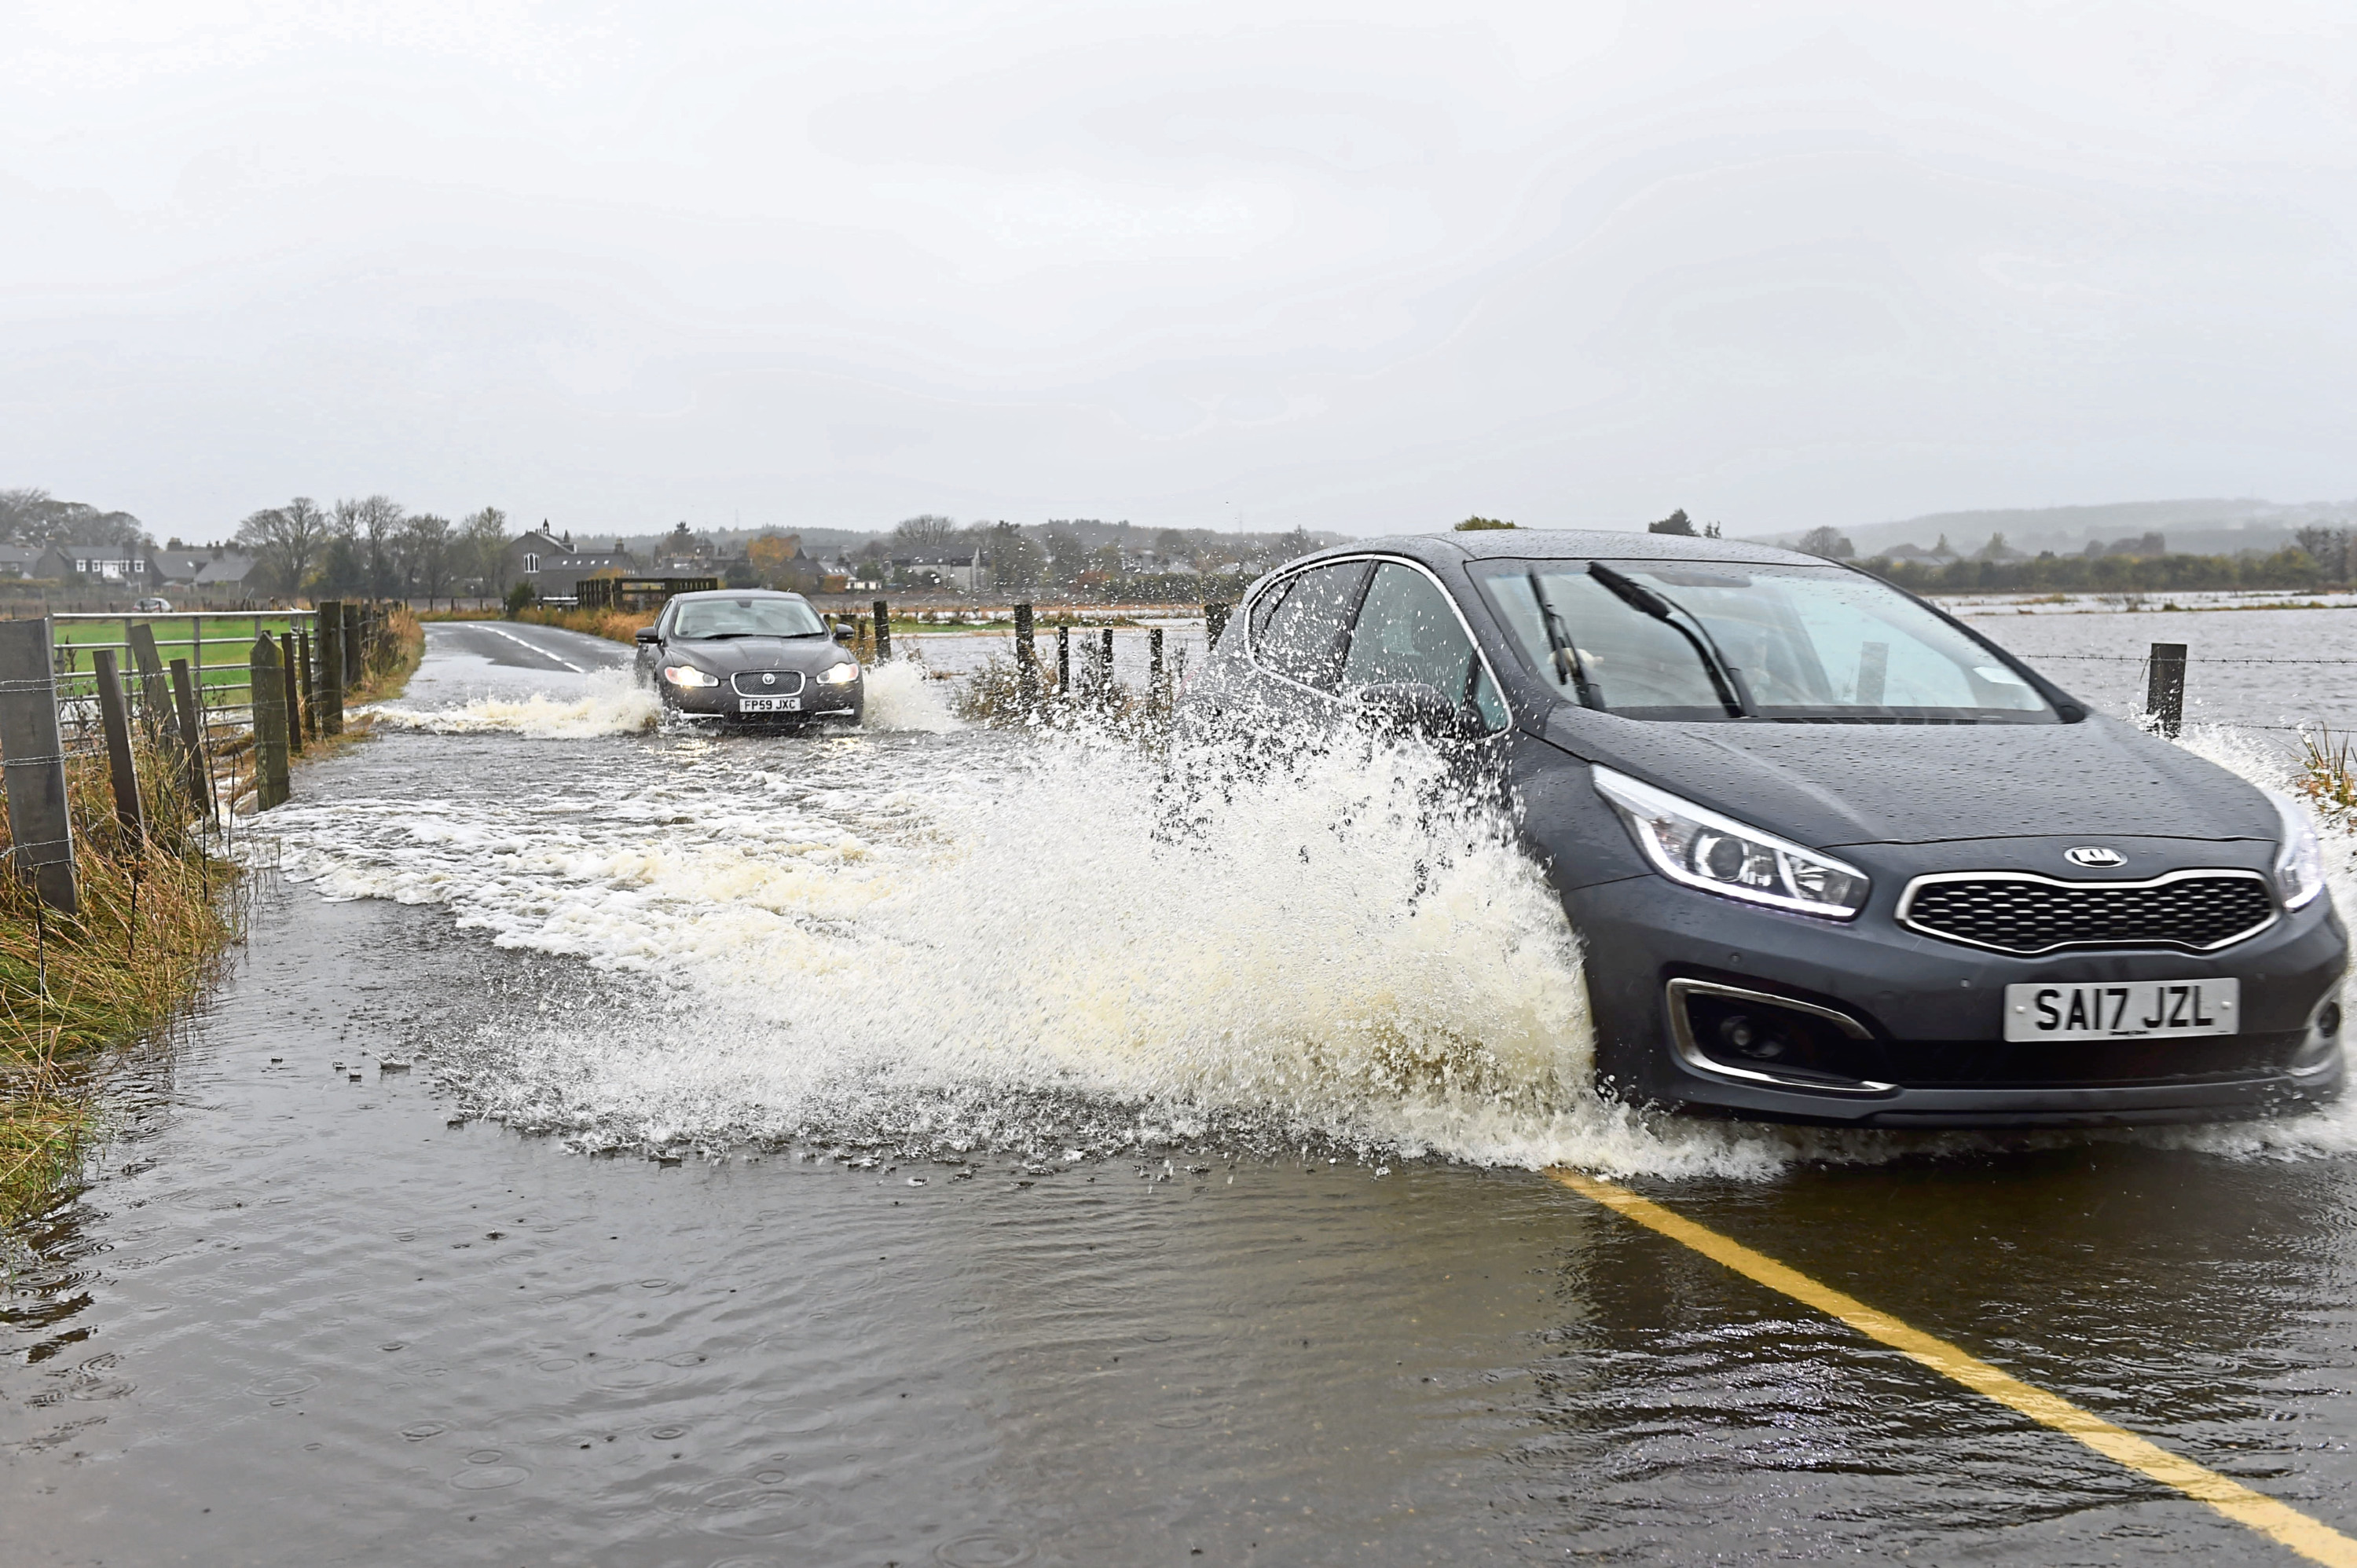 Cars attempt to make their way through the flooded road before it was closed